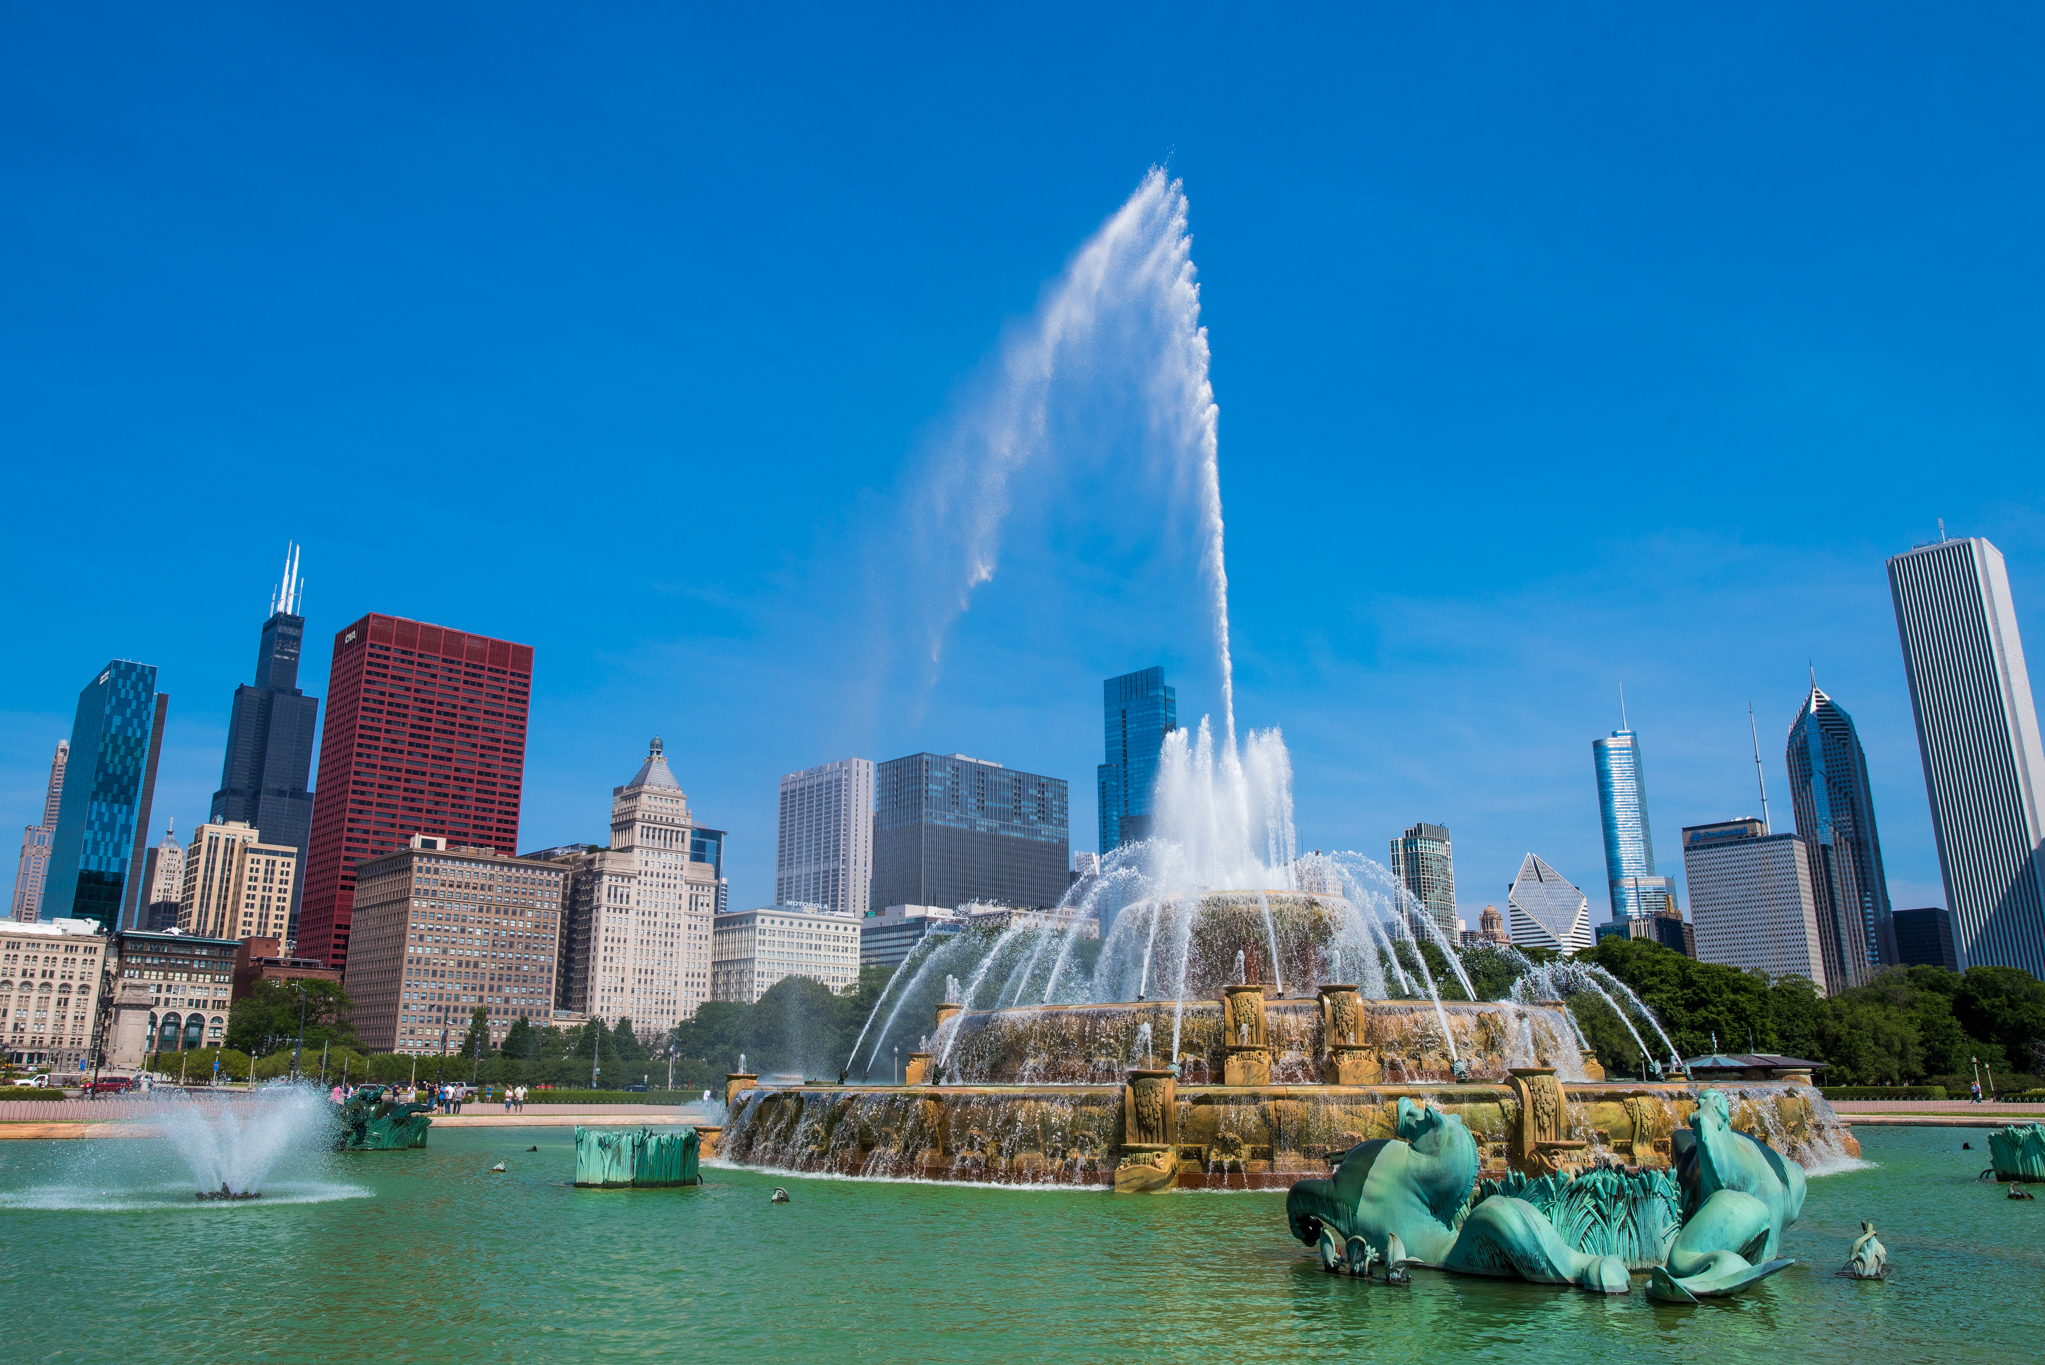 Best Restaurants In Chicago 2020 May 2020 Events Calendar for Things To Do in Chicago